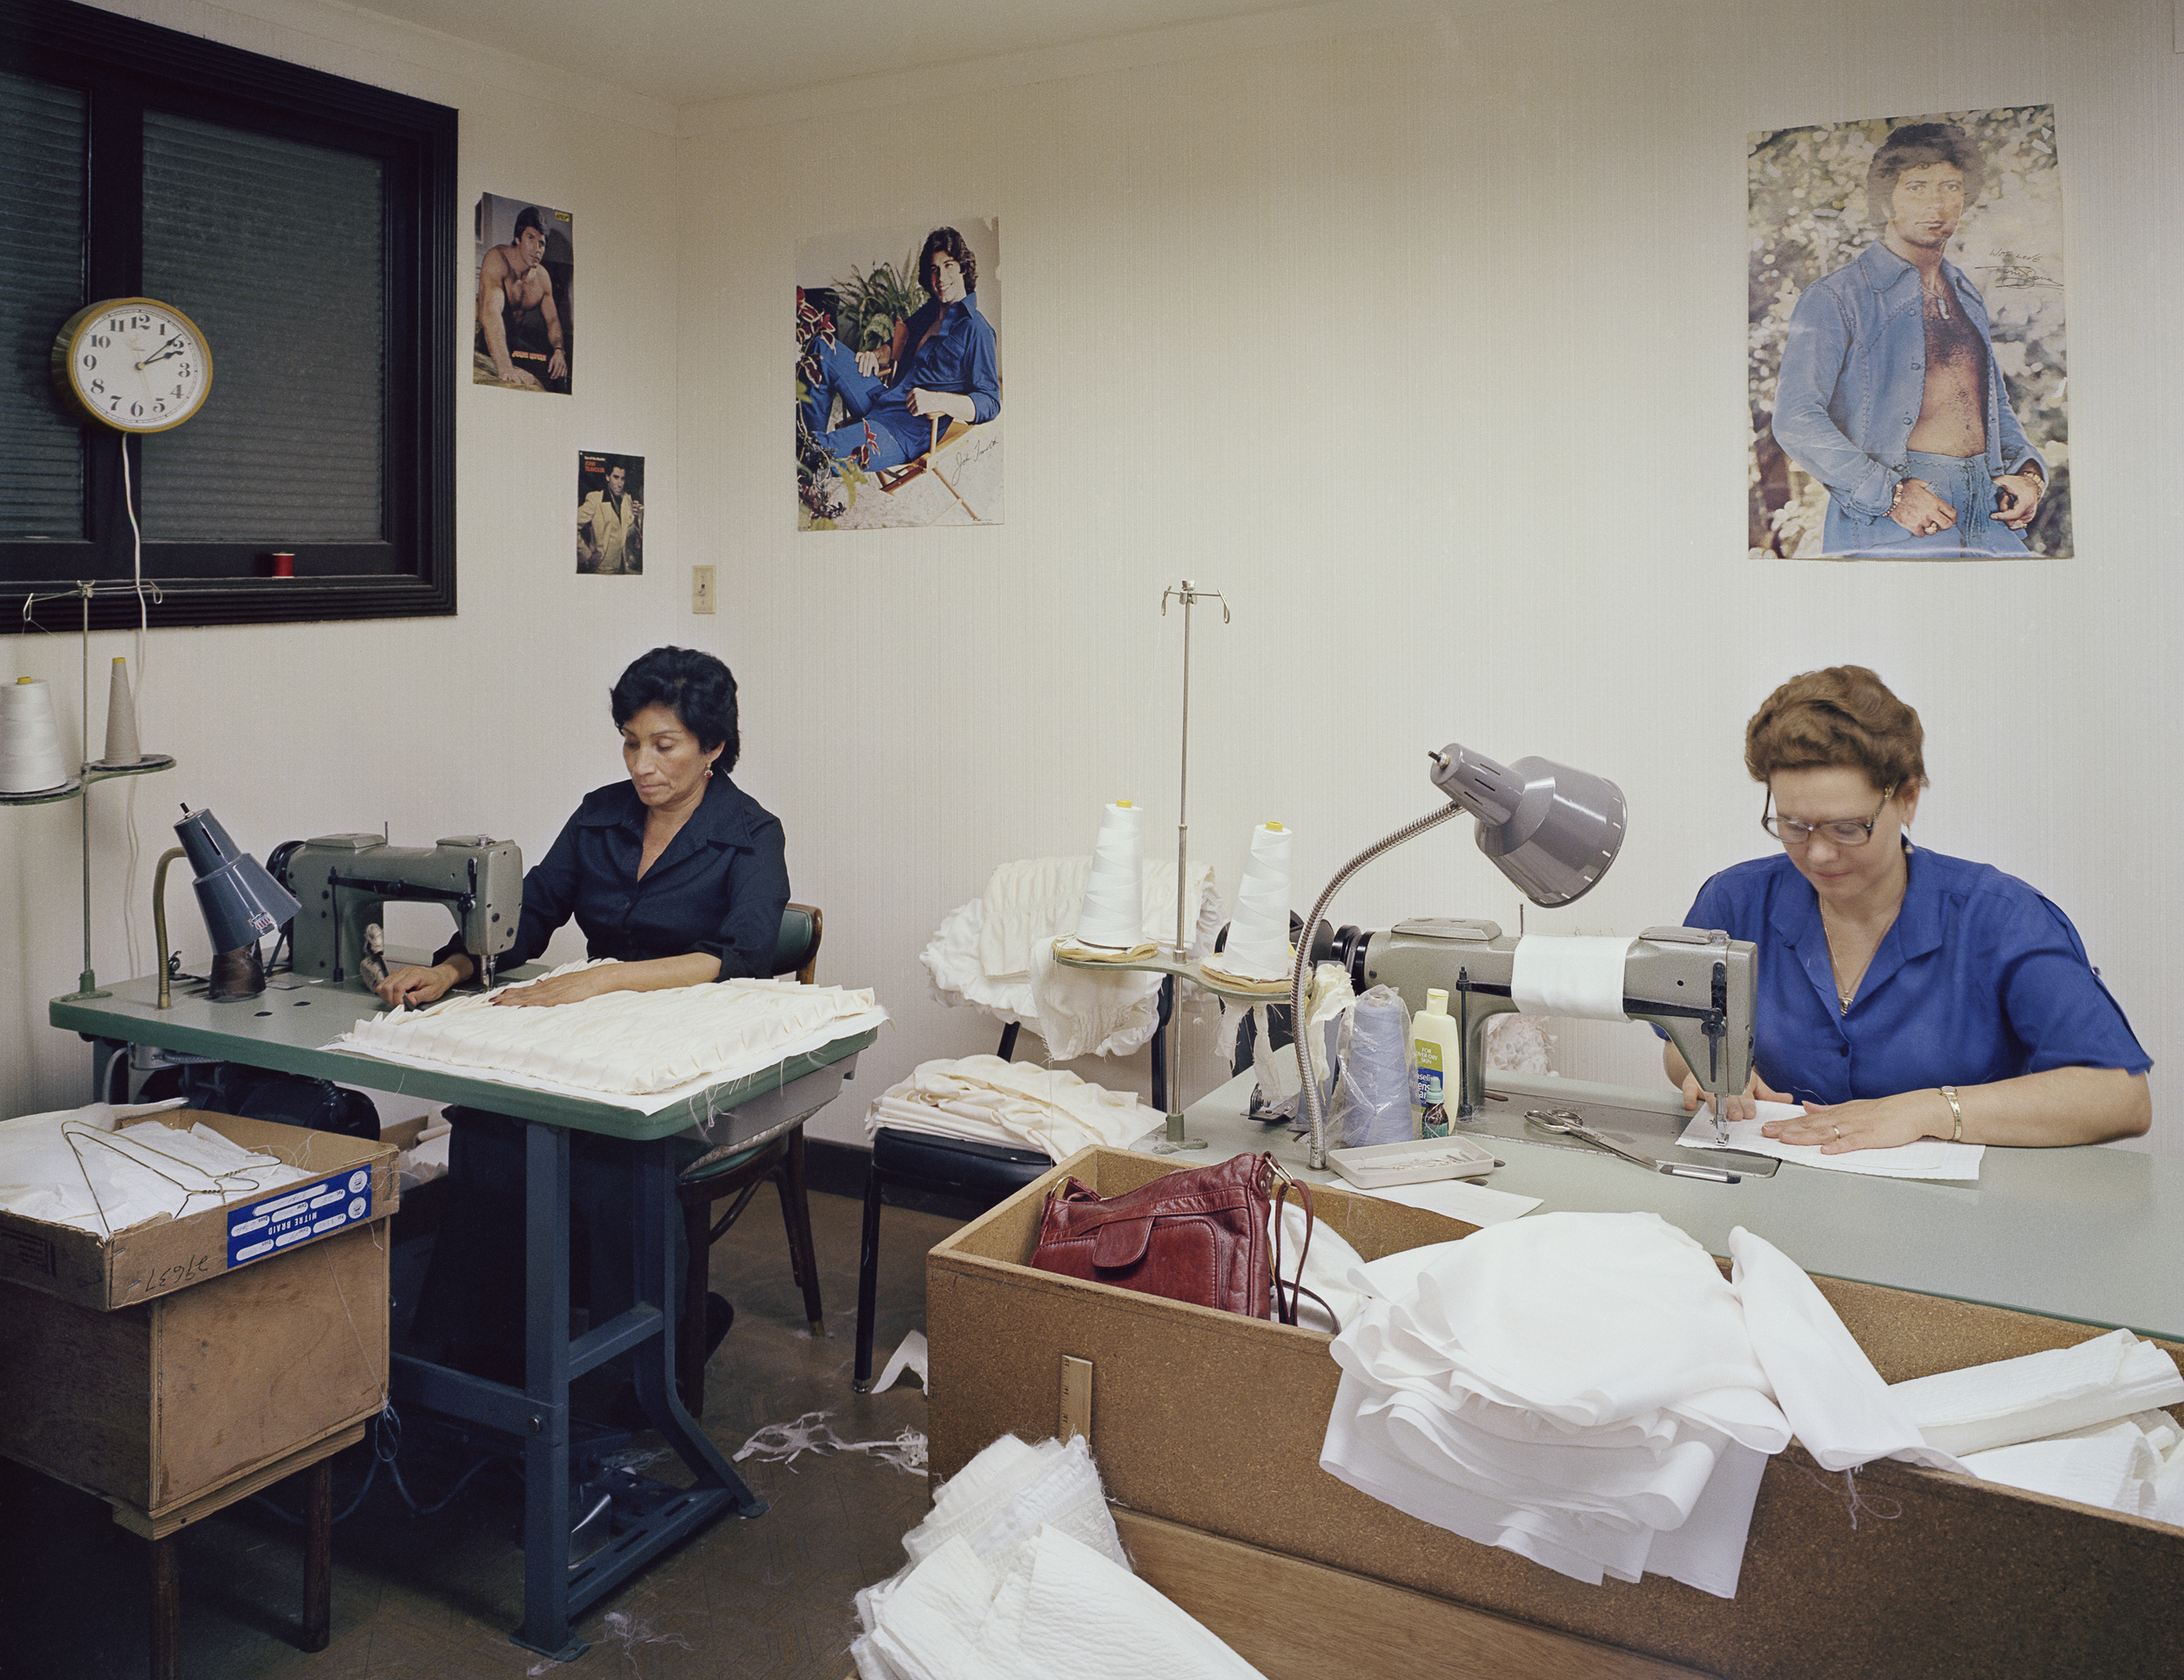 JANET DELANEY Bay Casket Company, 1020 Folsom Street, 1980 Archival Pigment Print, 2016 16 x 20 inches, edition of 5 20 x 24 inches, edition of 2 30 x 40 inches, edition of 2